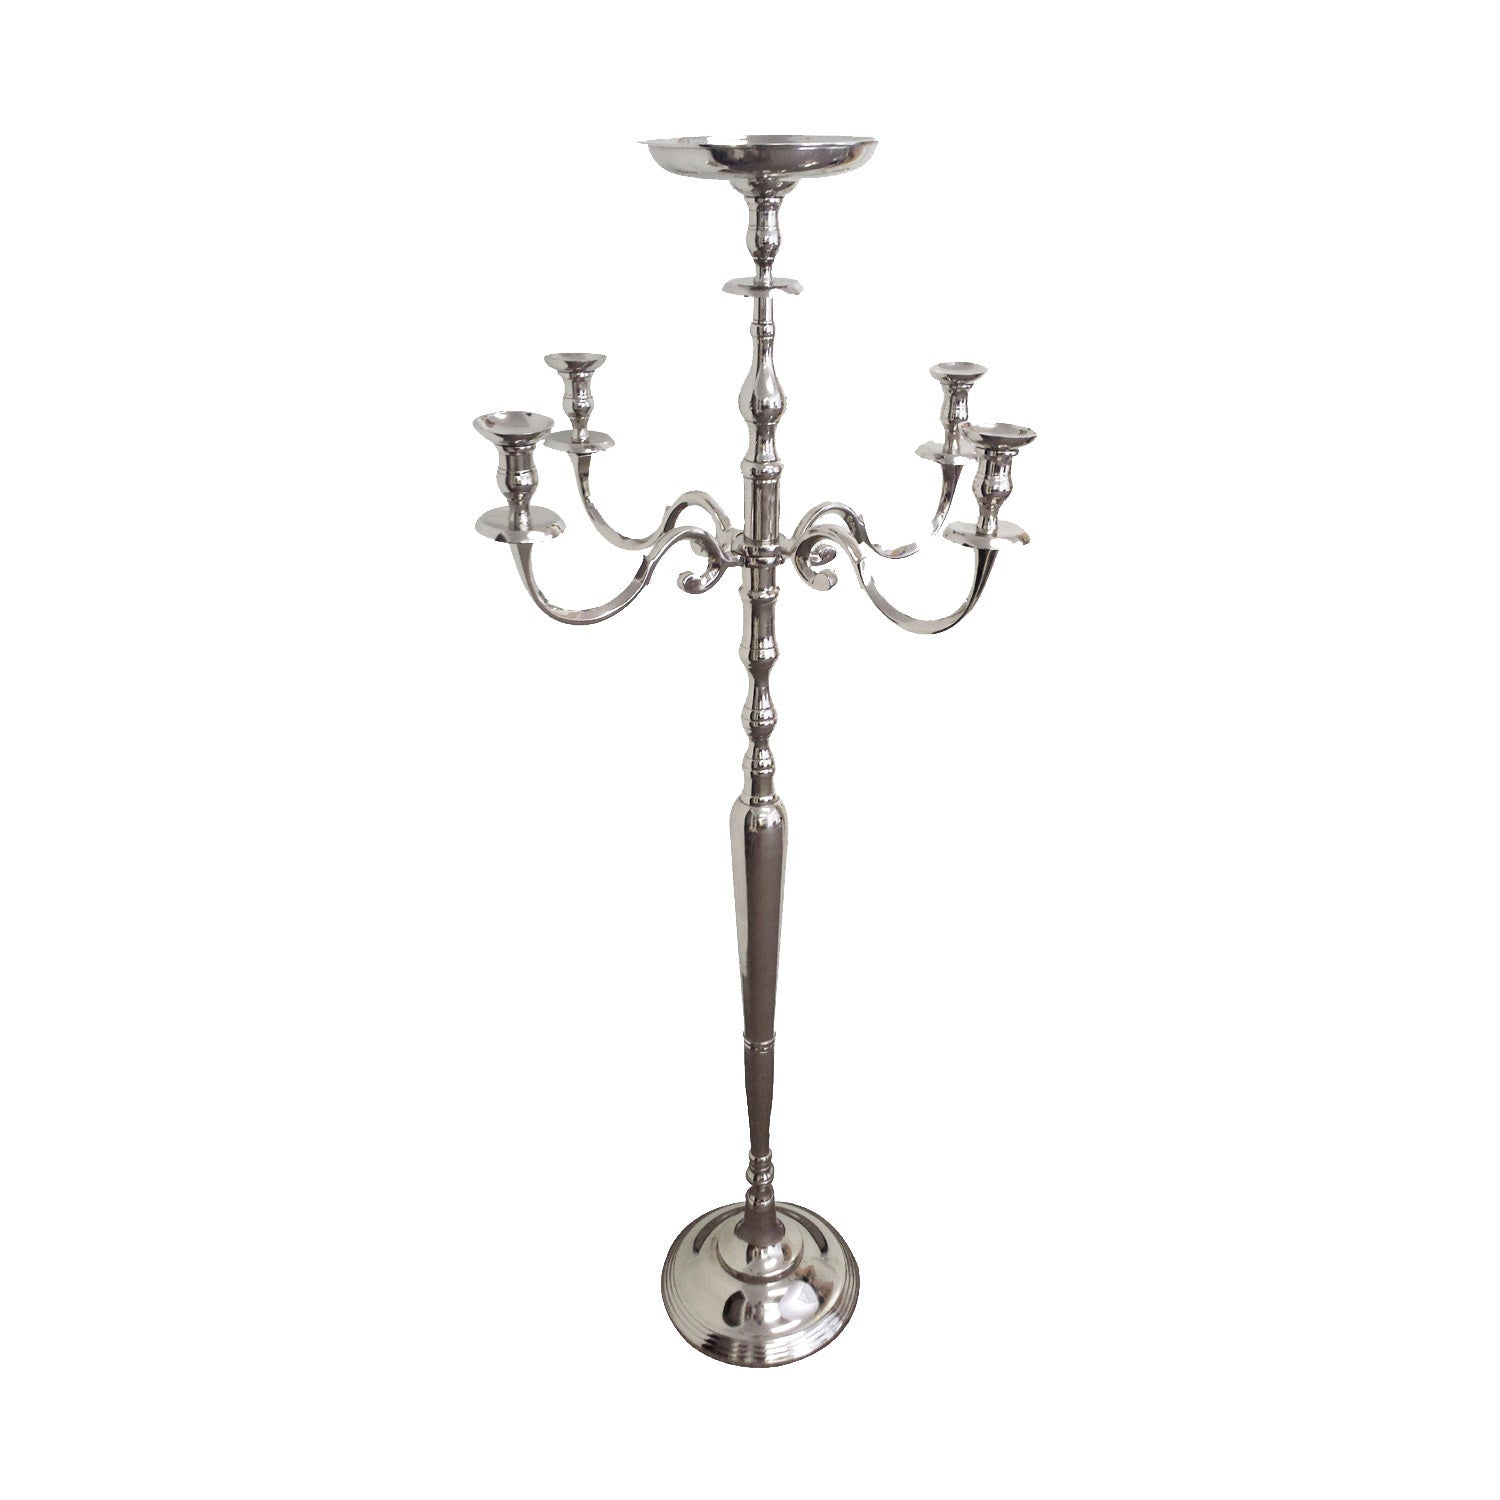 giftbay 4016 wedding candelabra with 5 candlestick holders and 1 flowe